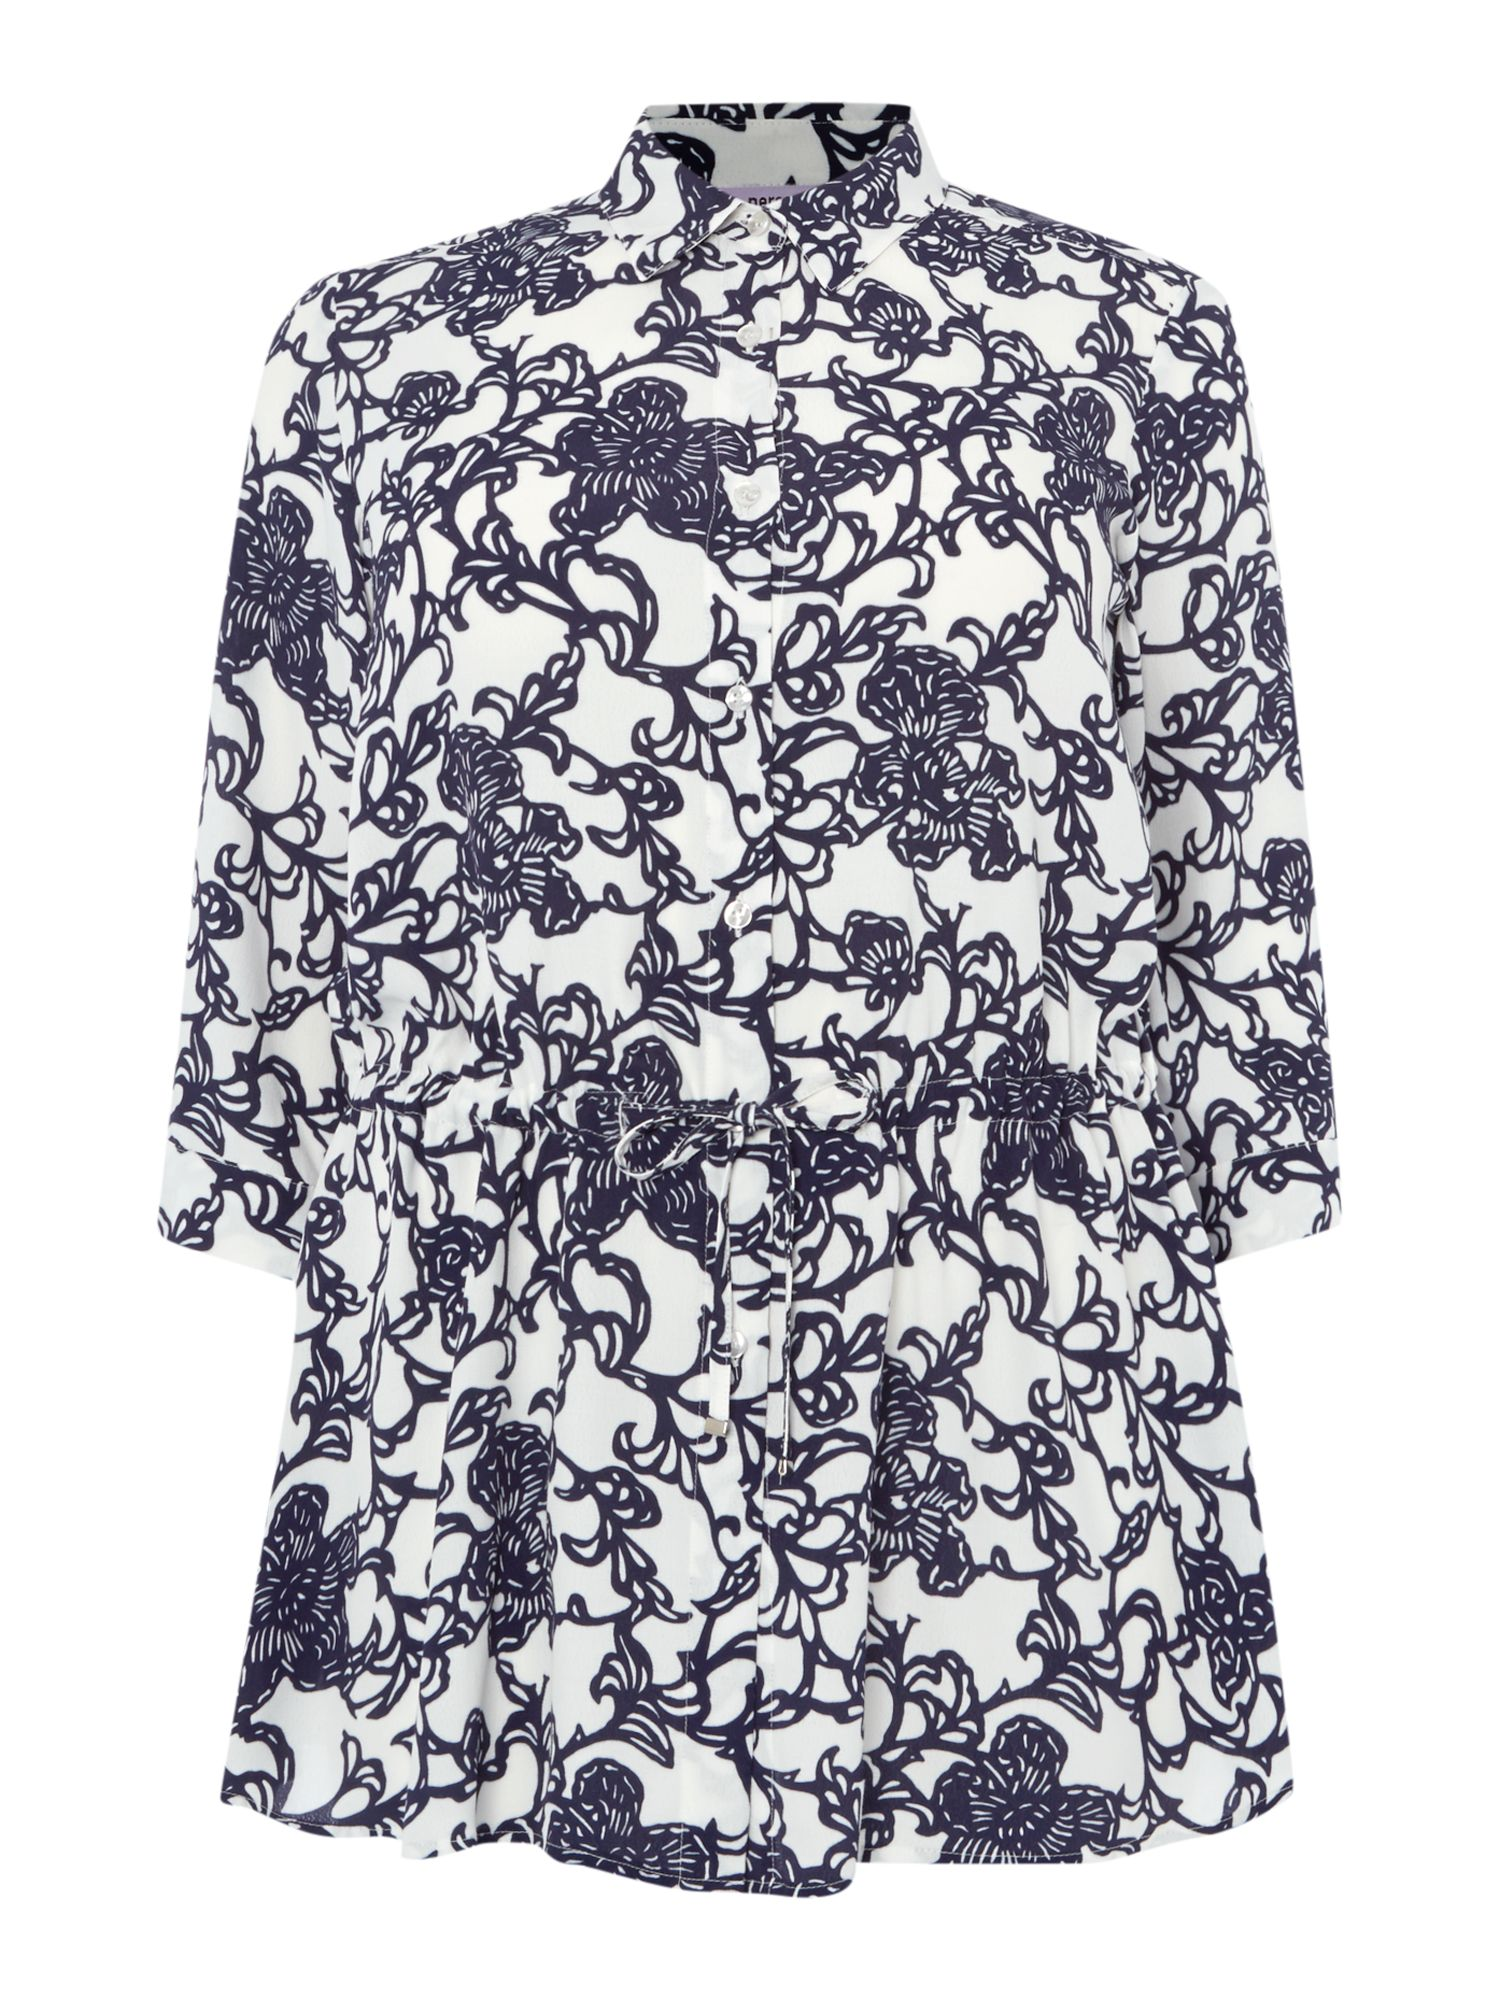 Persona Shirt with floral pattern, White